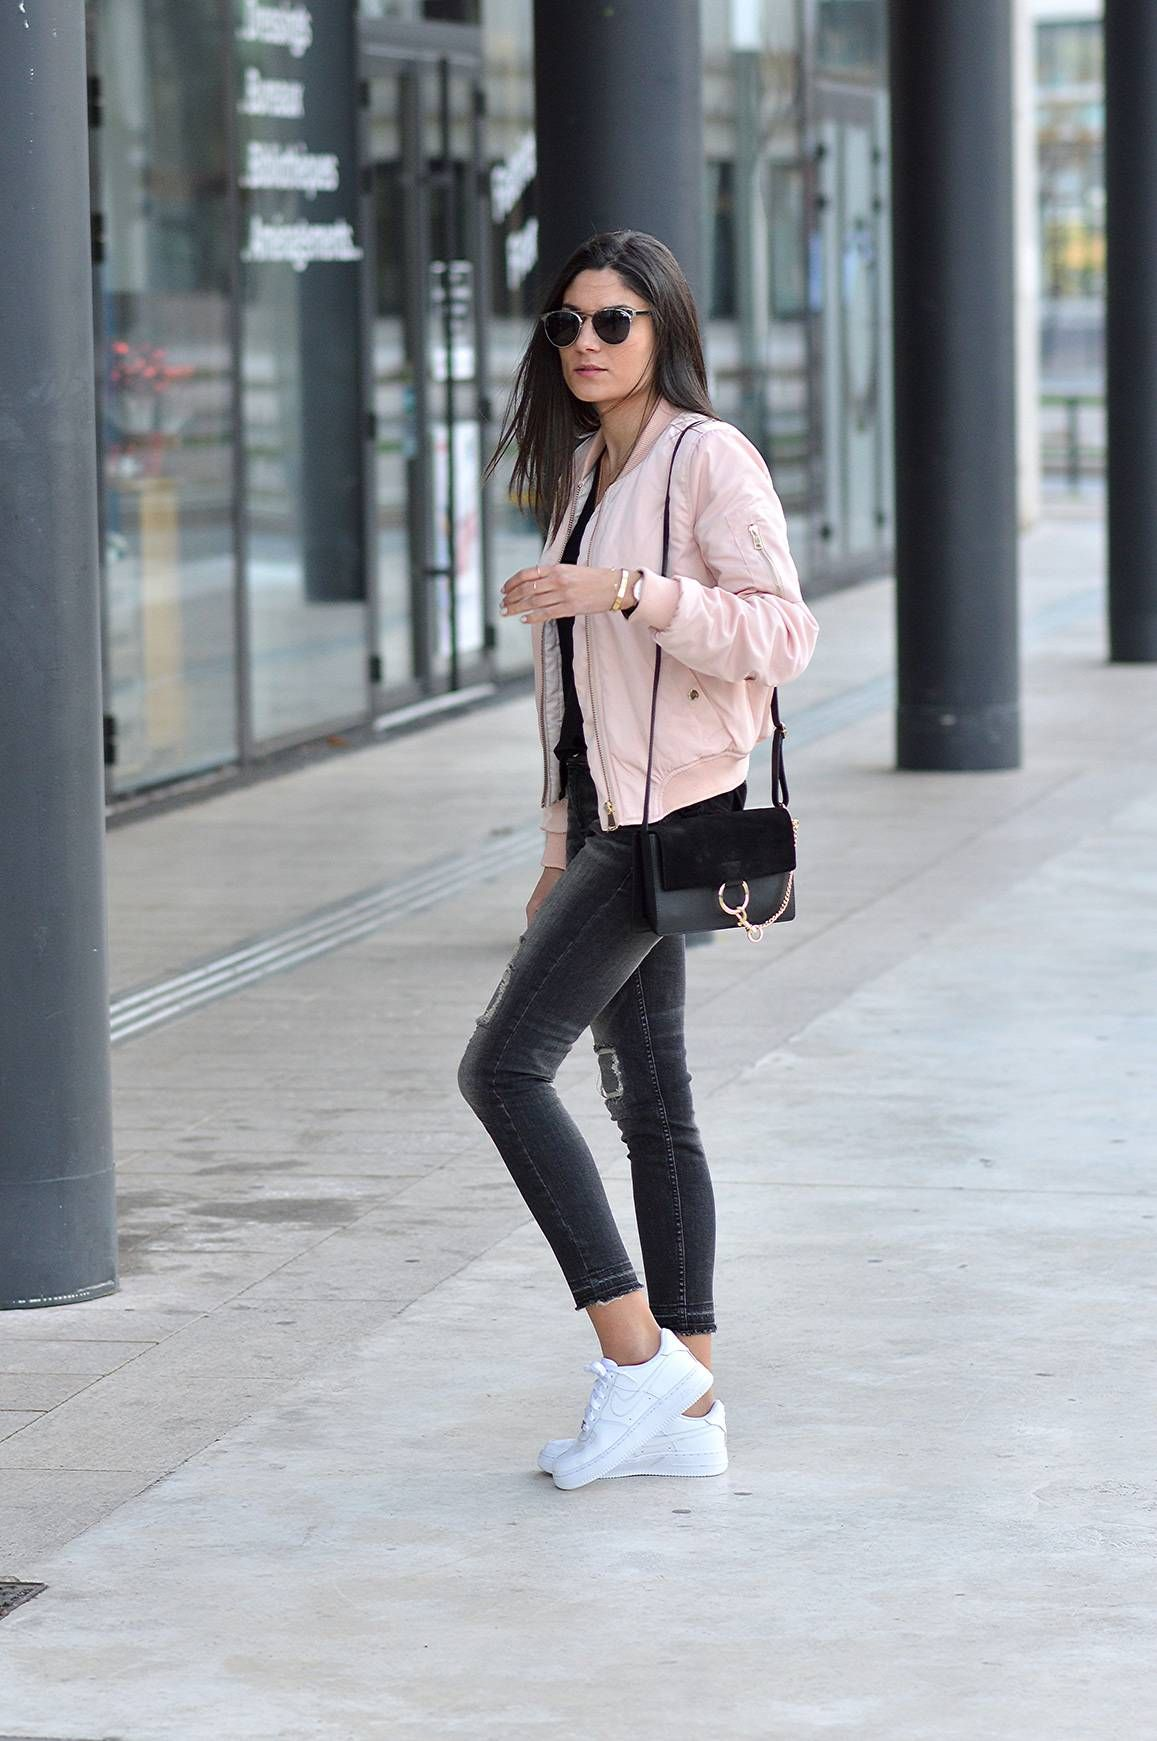 Jacket Federica L. wears the bomber jacket trend in a pretty shade of pale  pink, capturing casual and feminine vibes in her every day outfit.